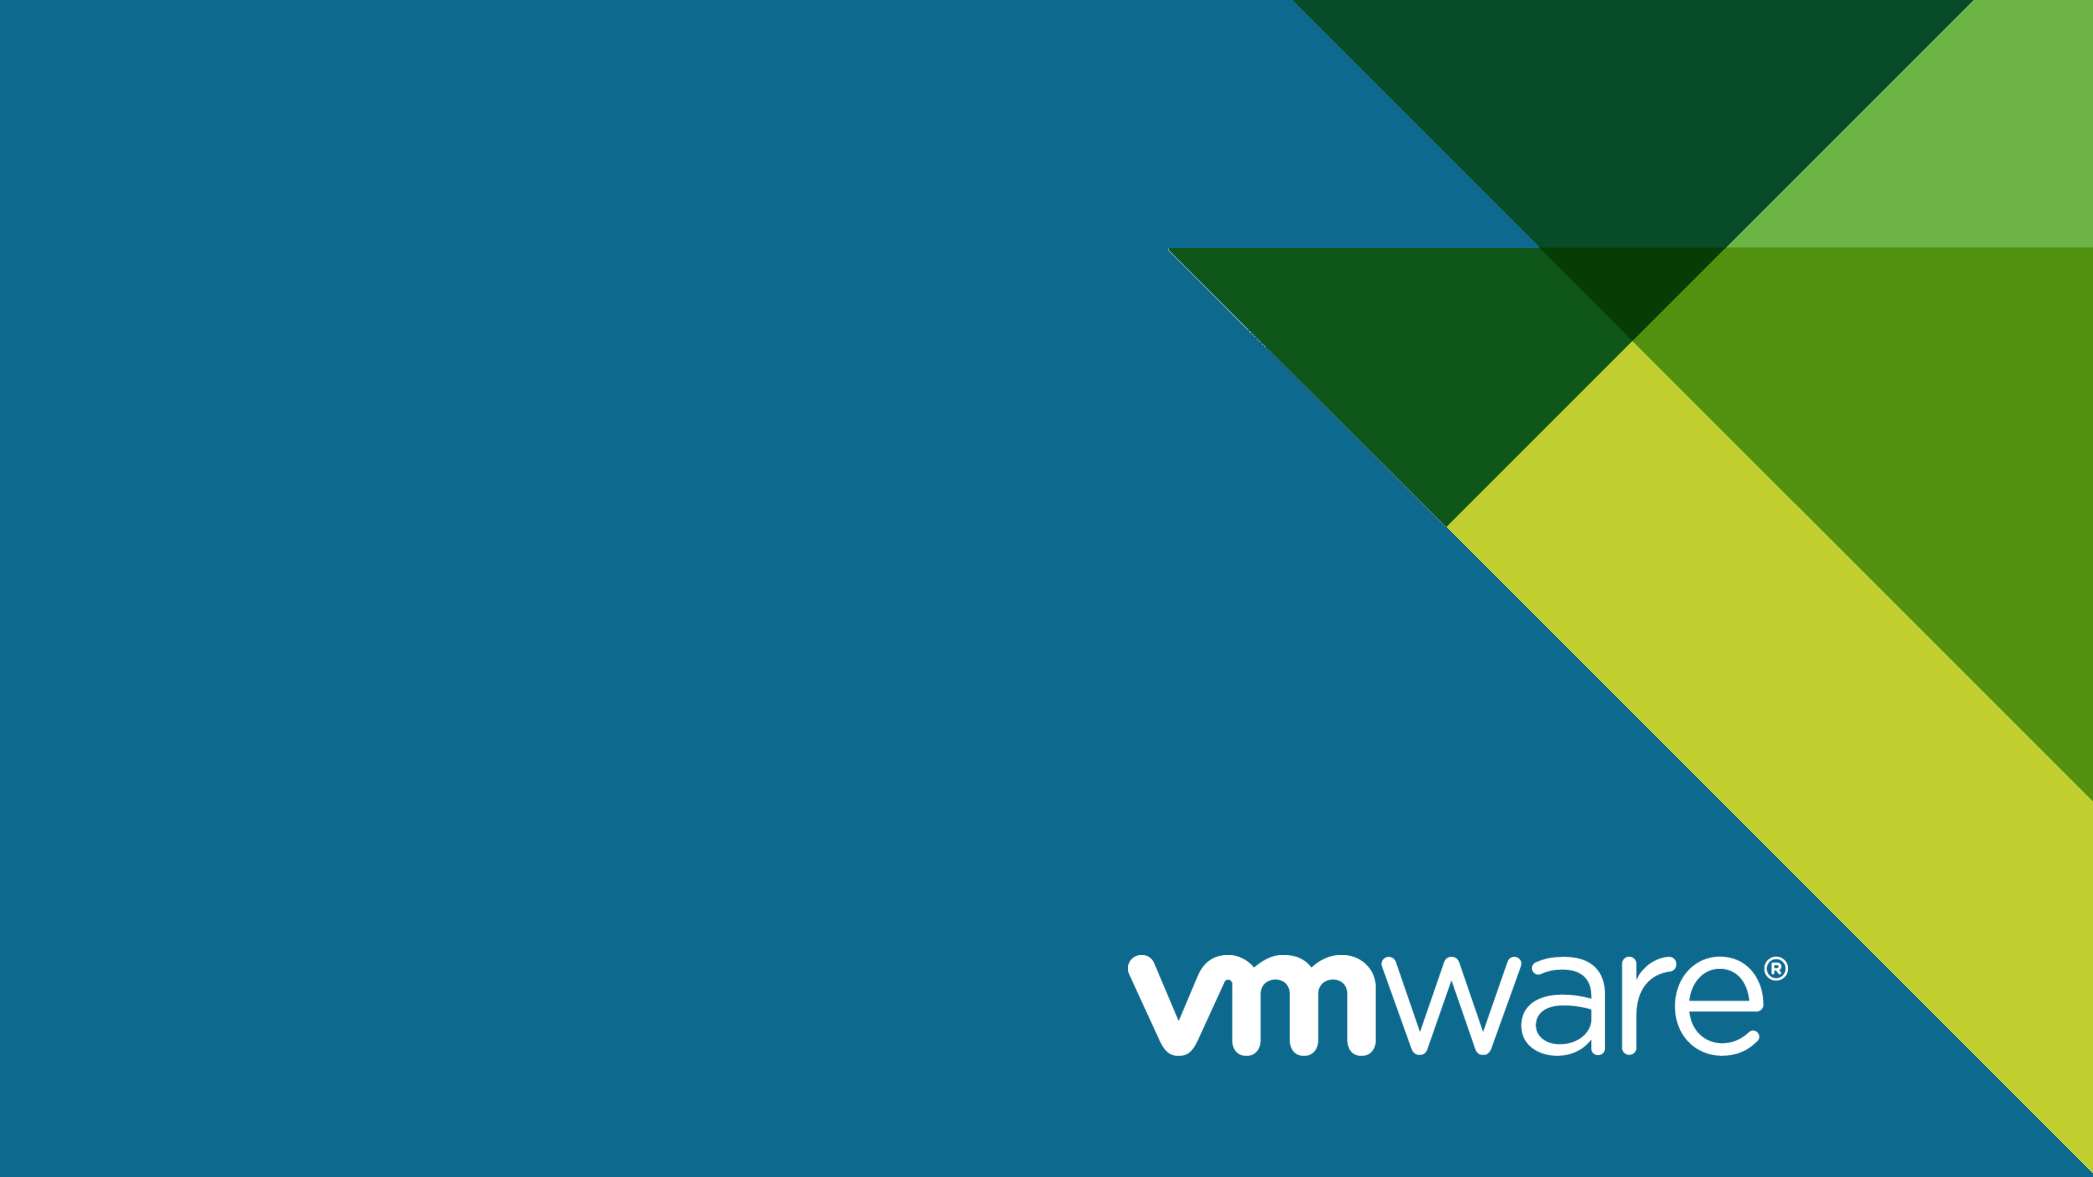 VMware vCloud Suite - I led Product Marketing for VMware's strategic suite of cloud-enabling software. vCloud enables enterprises to bring the power of the cloud into their datacenter.